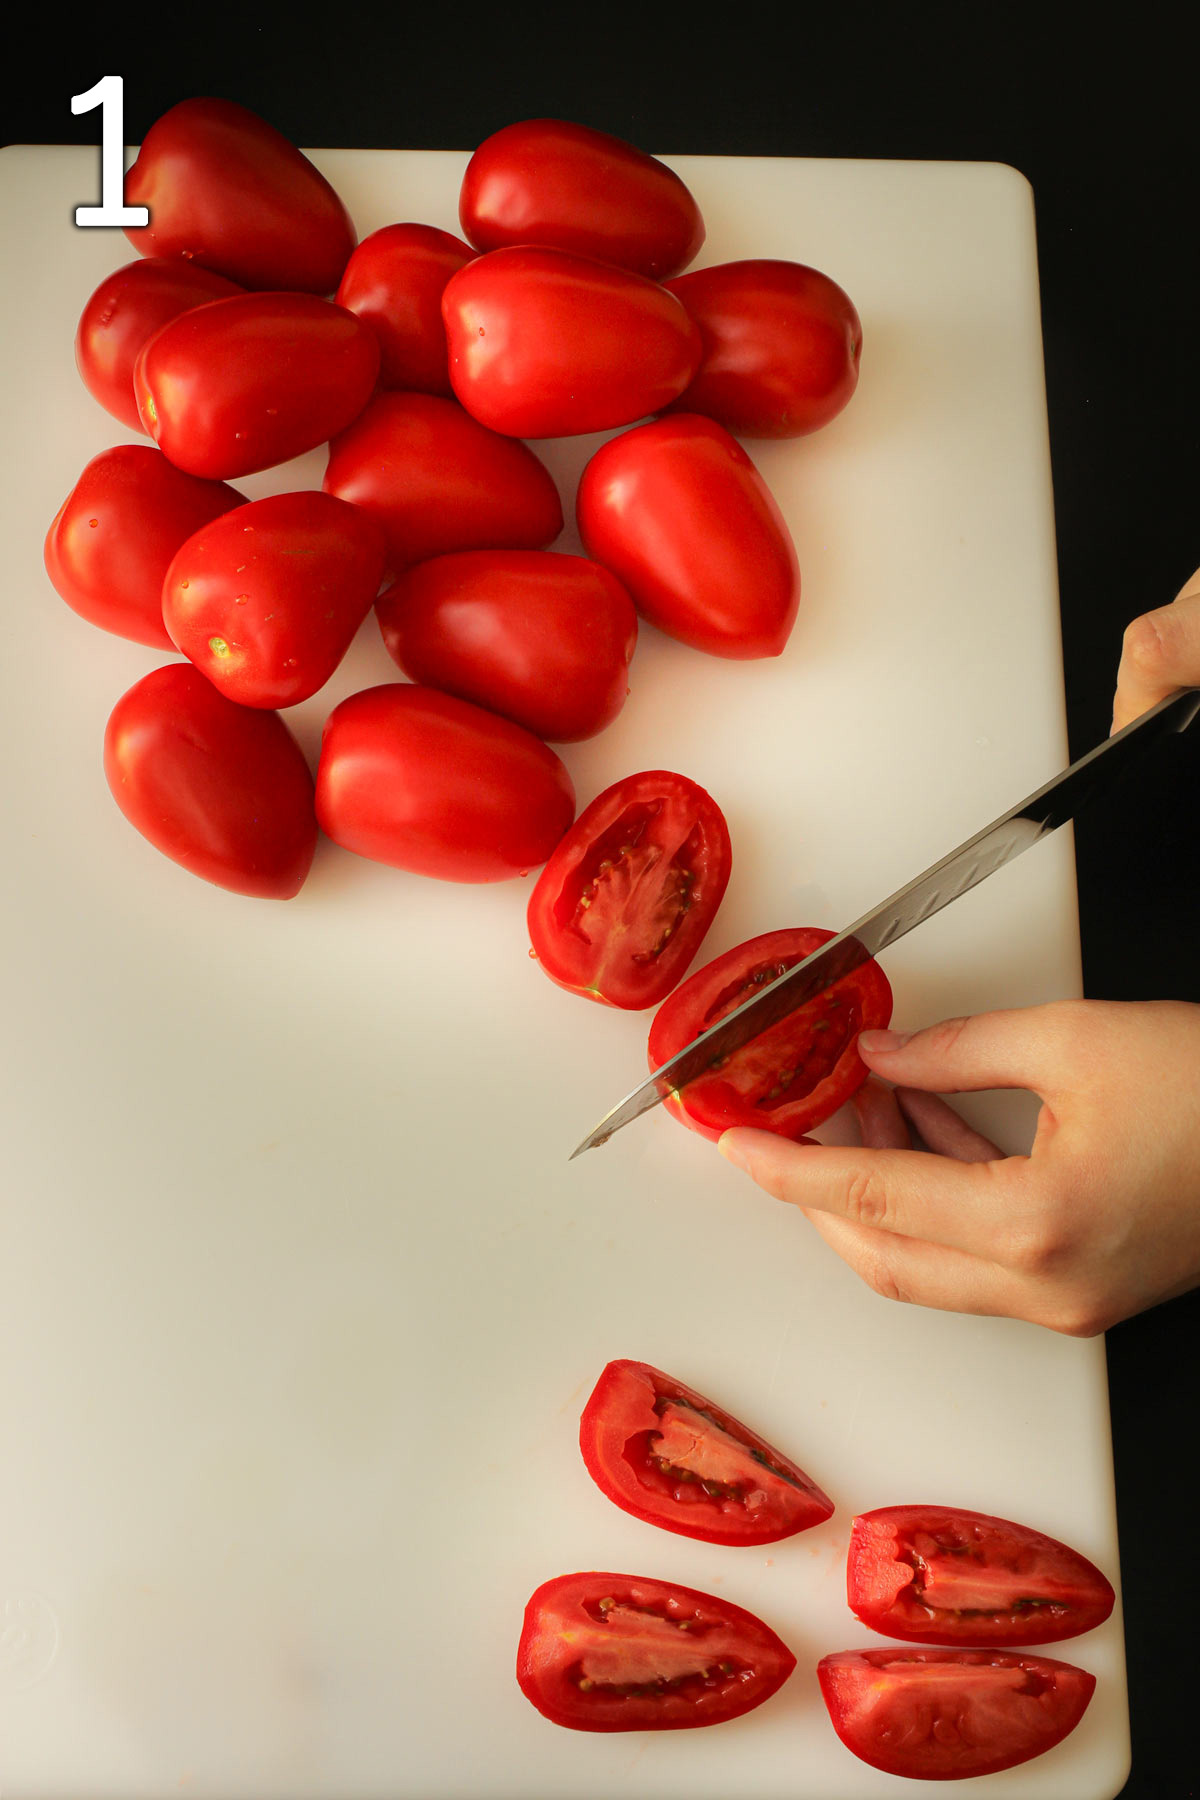 cutting tomatoes into quarters on a white cutting board.